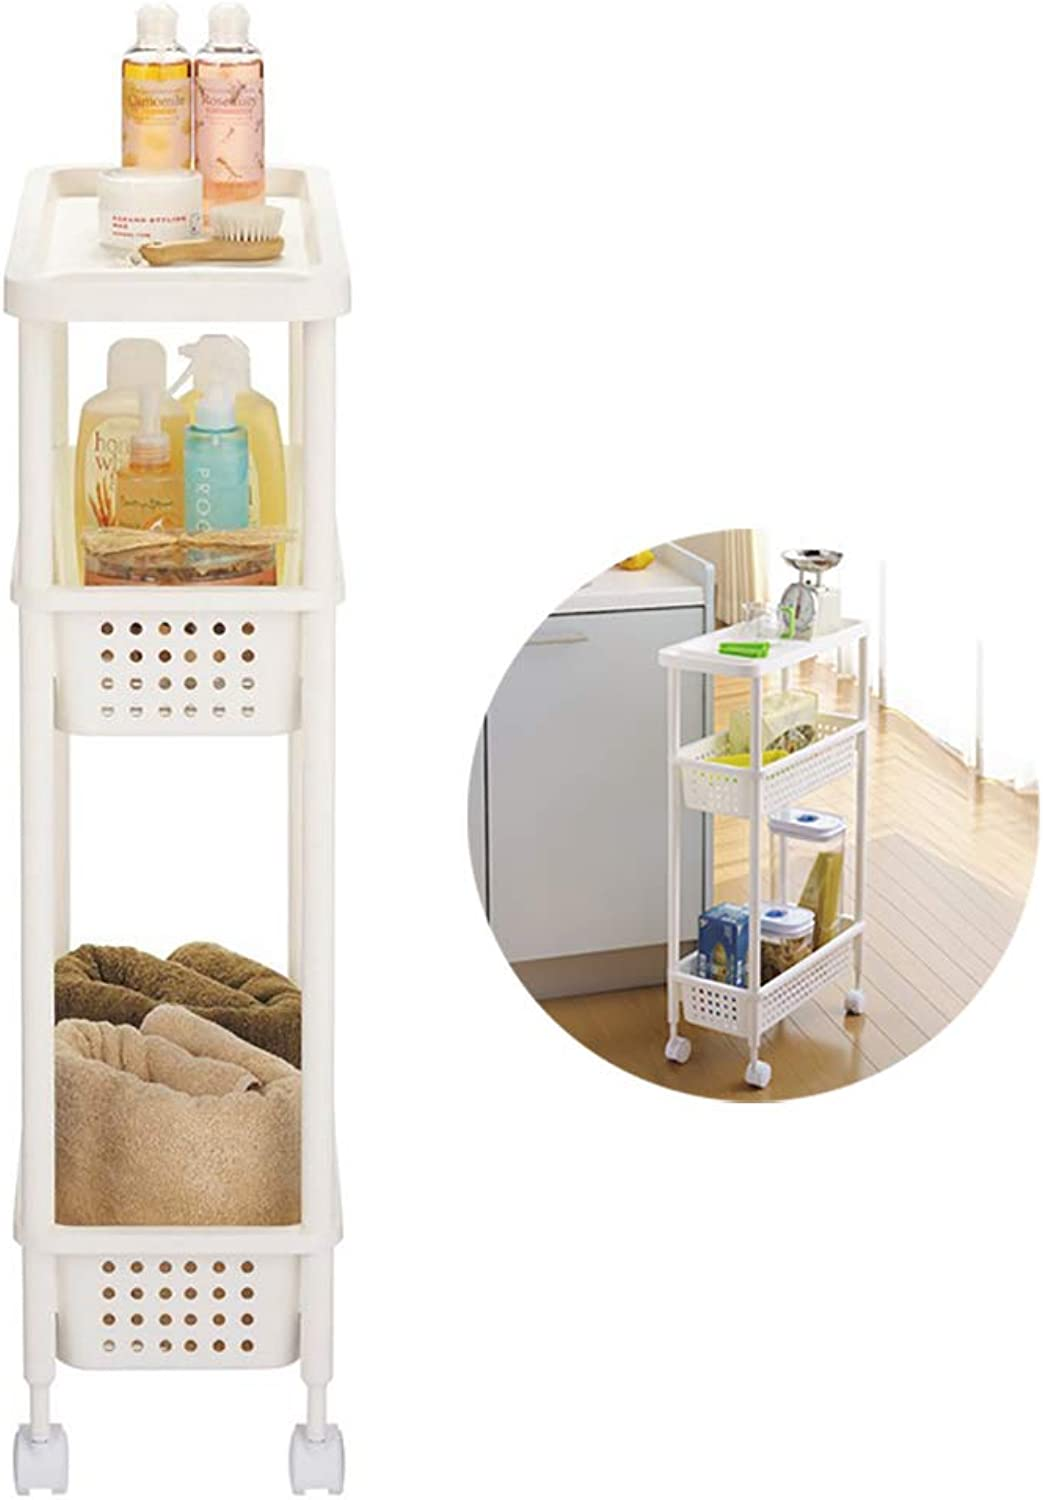 Slide Out Storage Tower Storage Cart Pull-Out Slide – Out Mobile Commodity Shelf Rack Organizer Unit with Wheels for Laundry, Bathroom & Kitchen 3-Tier